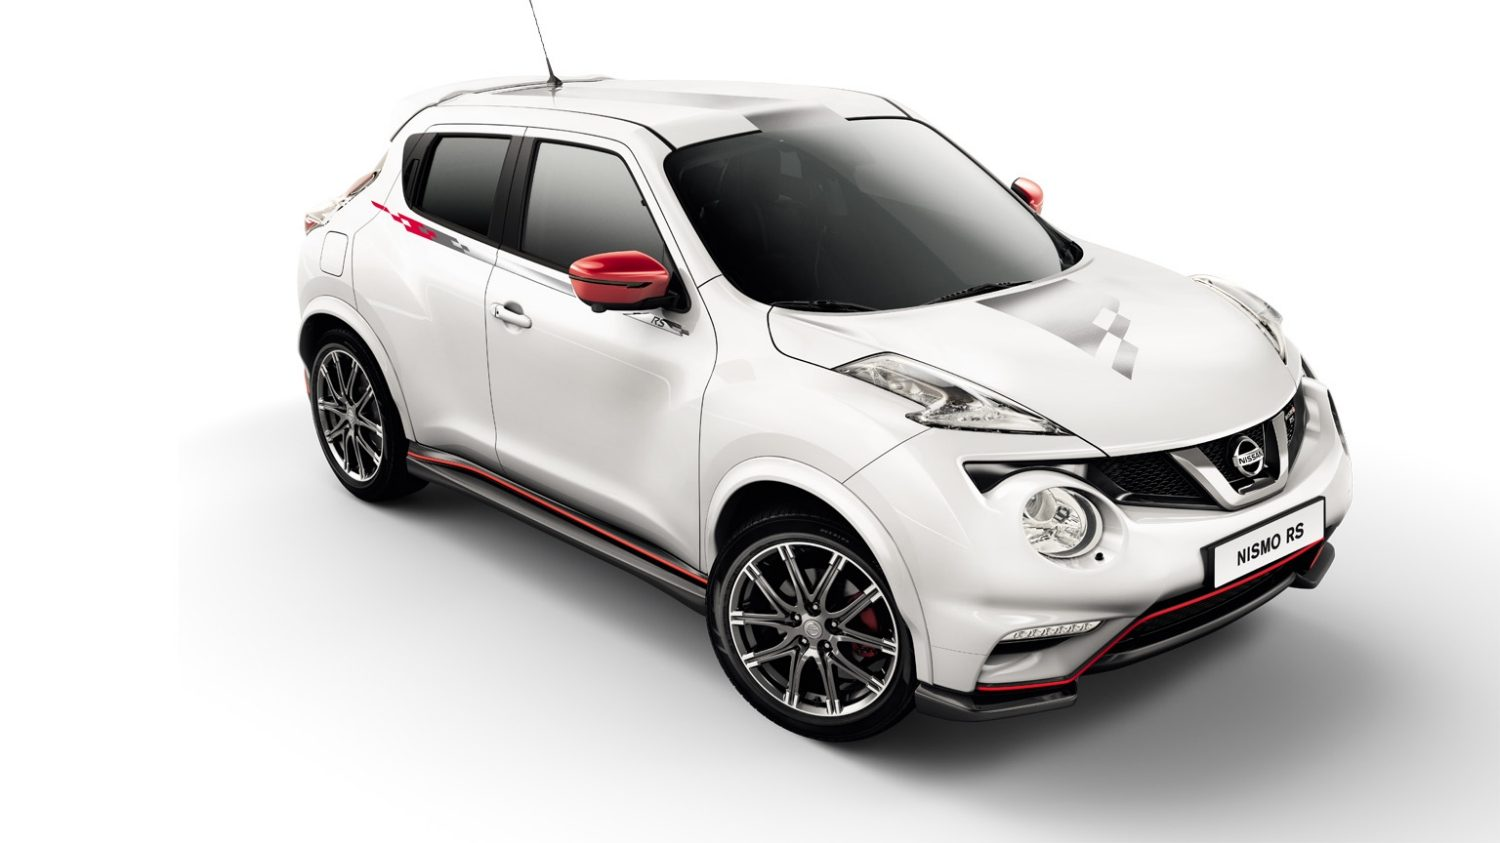 Experience Nissan - Juke NISMO RS